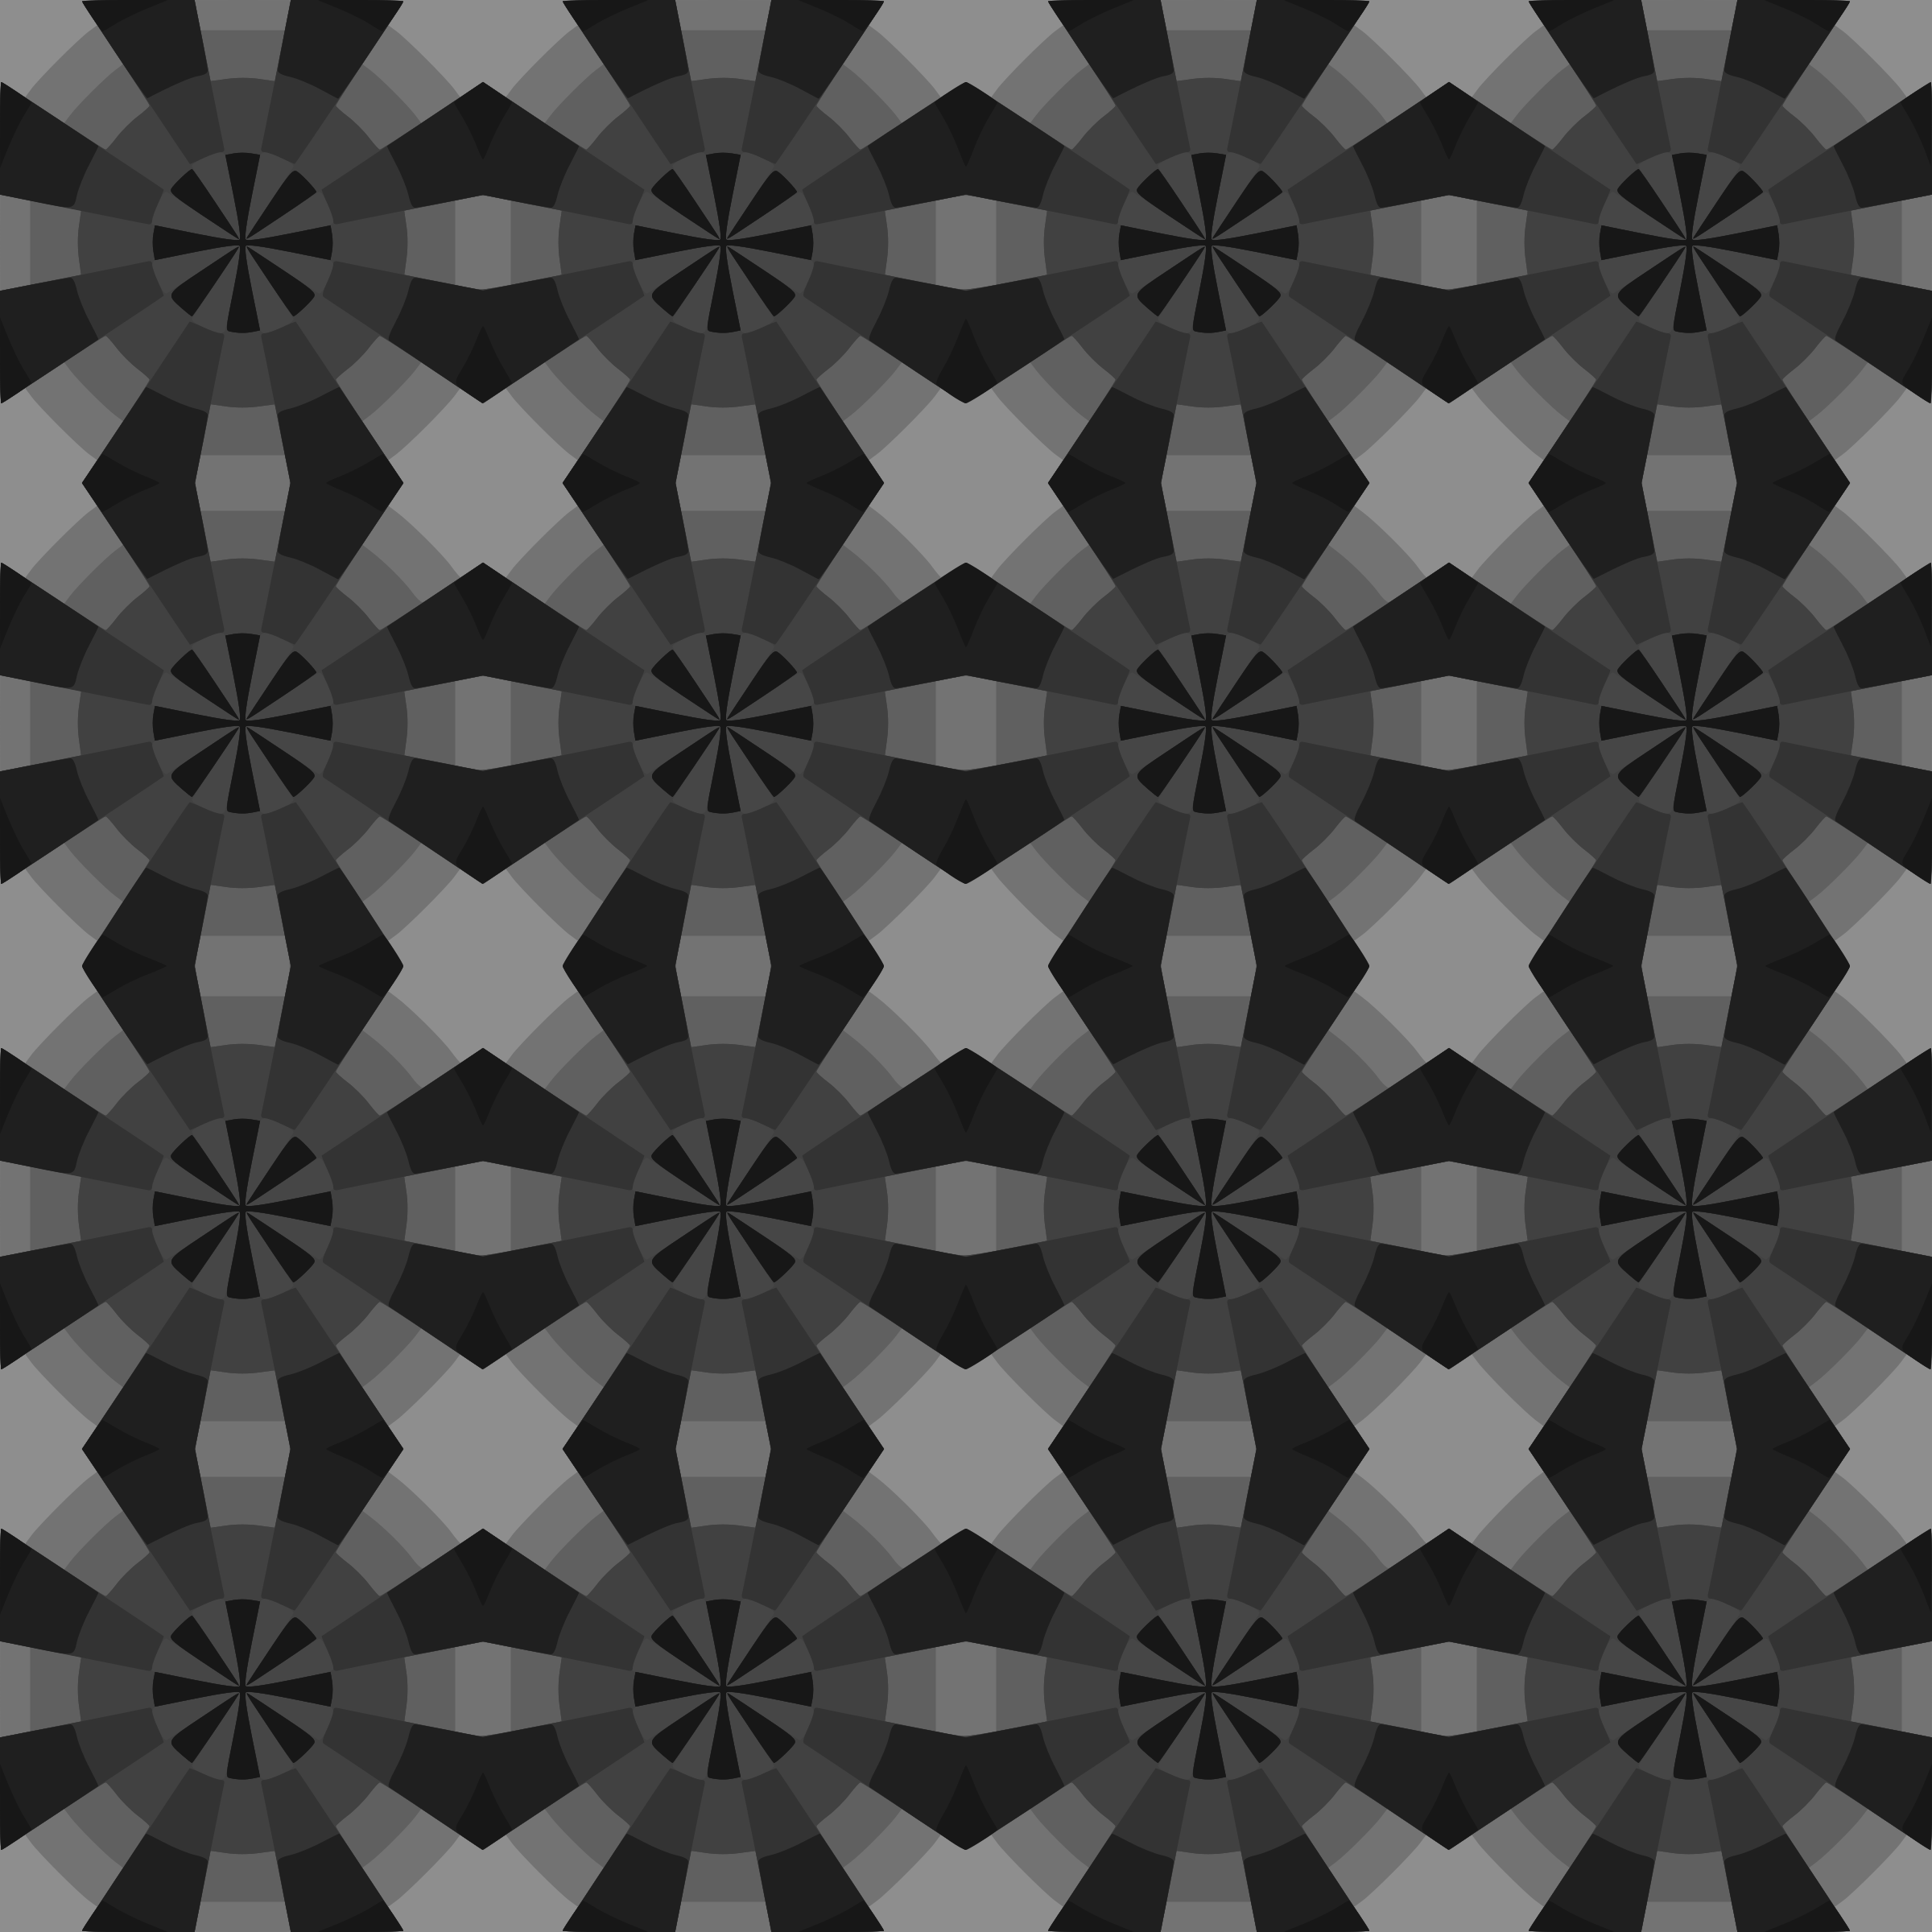 Background pattern 9 (greyscale) by Firkin